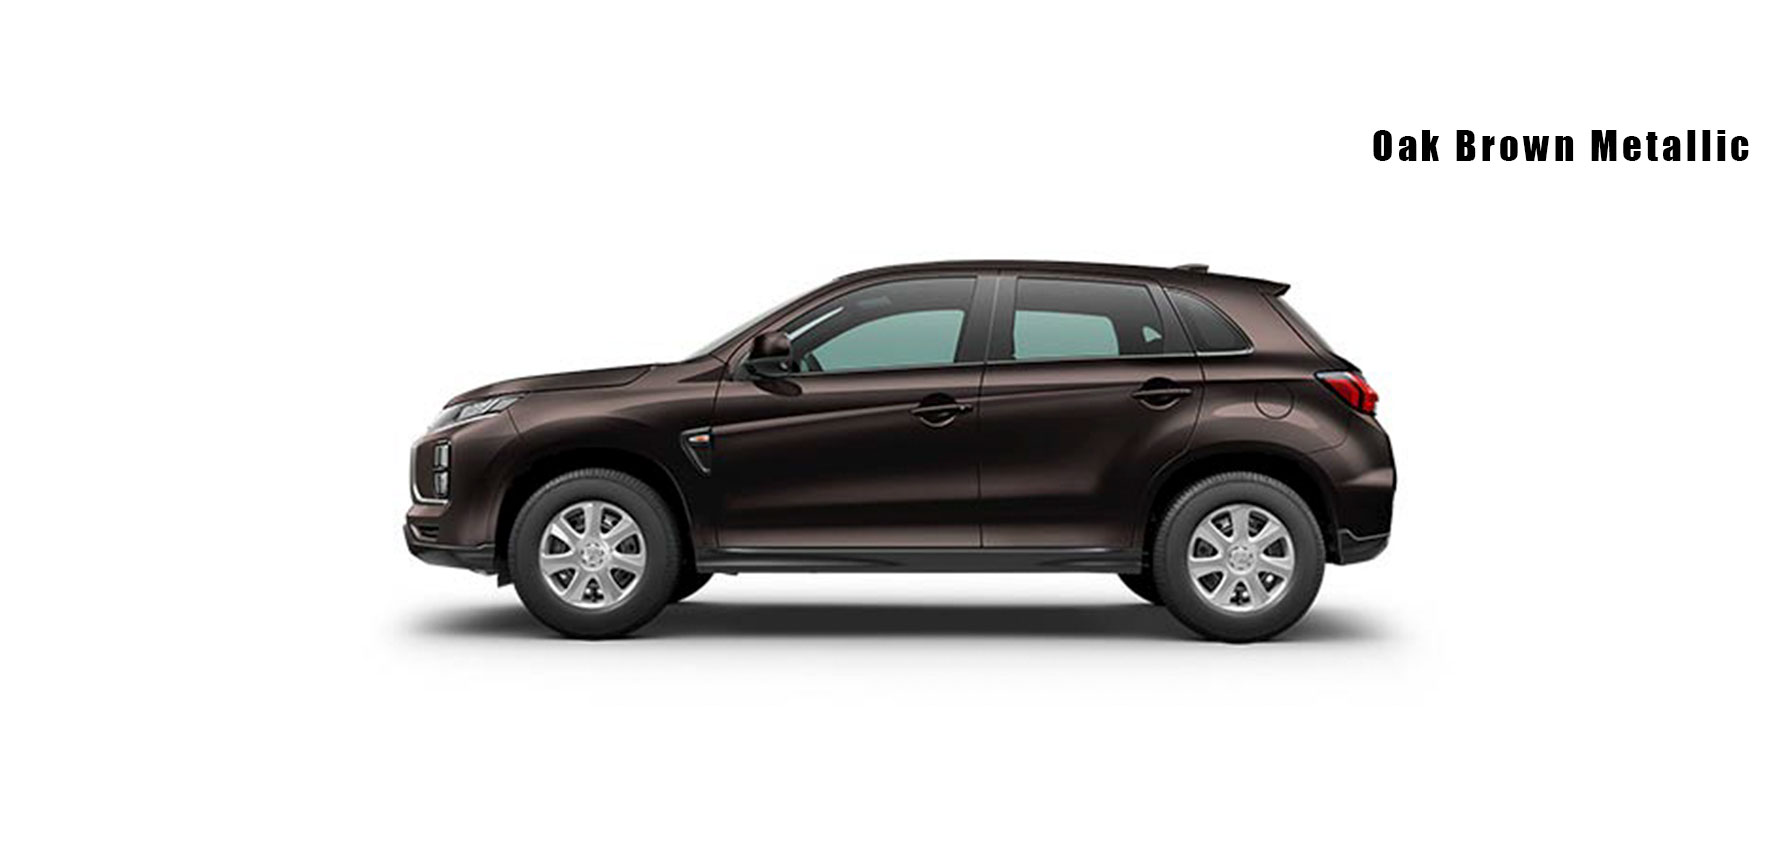 7-Oak-Brown-Metallic-mitsubishi-asx-autotrend-vercelli